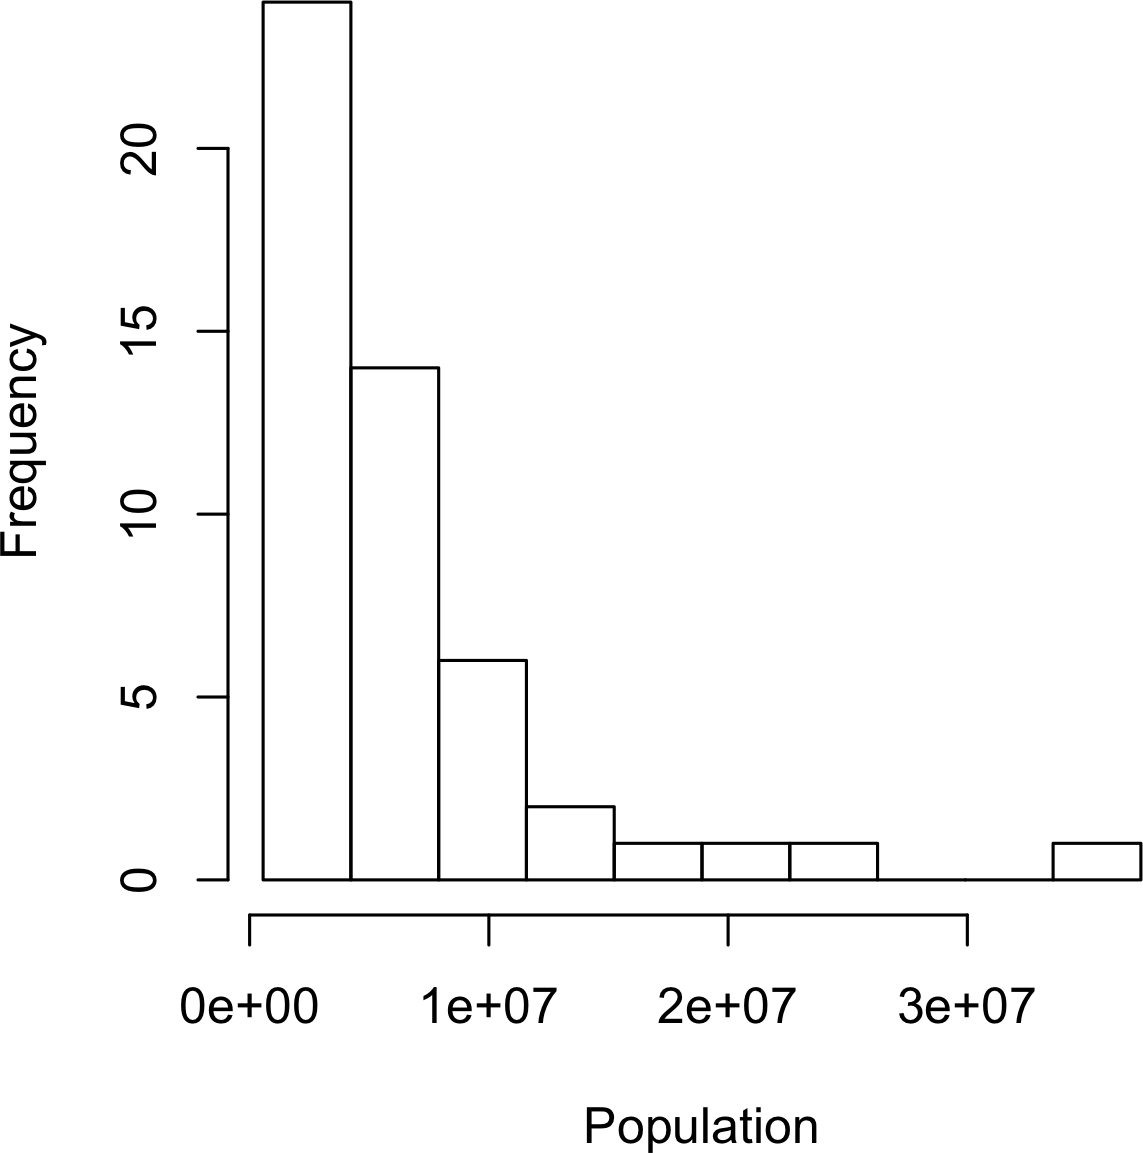 Histogram of state populations